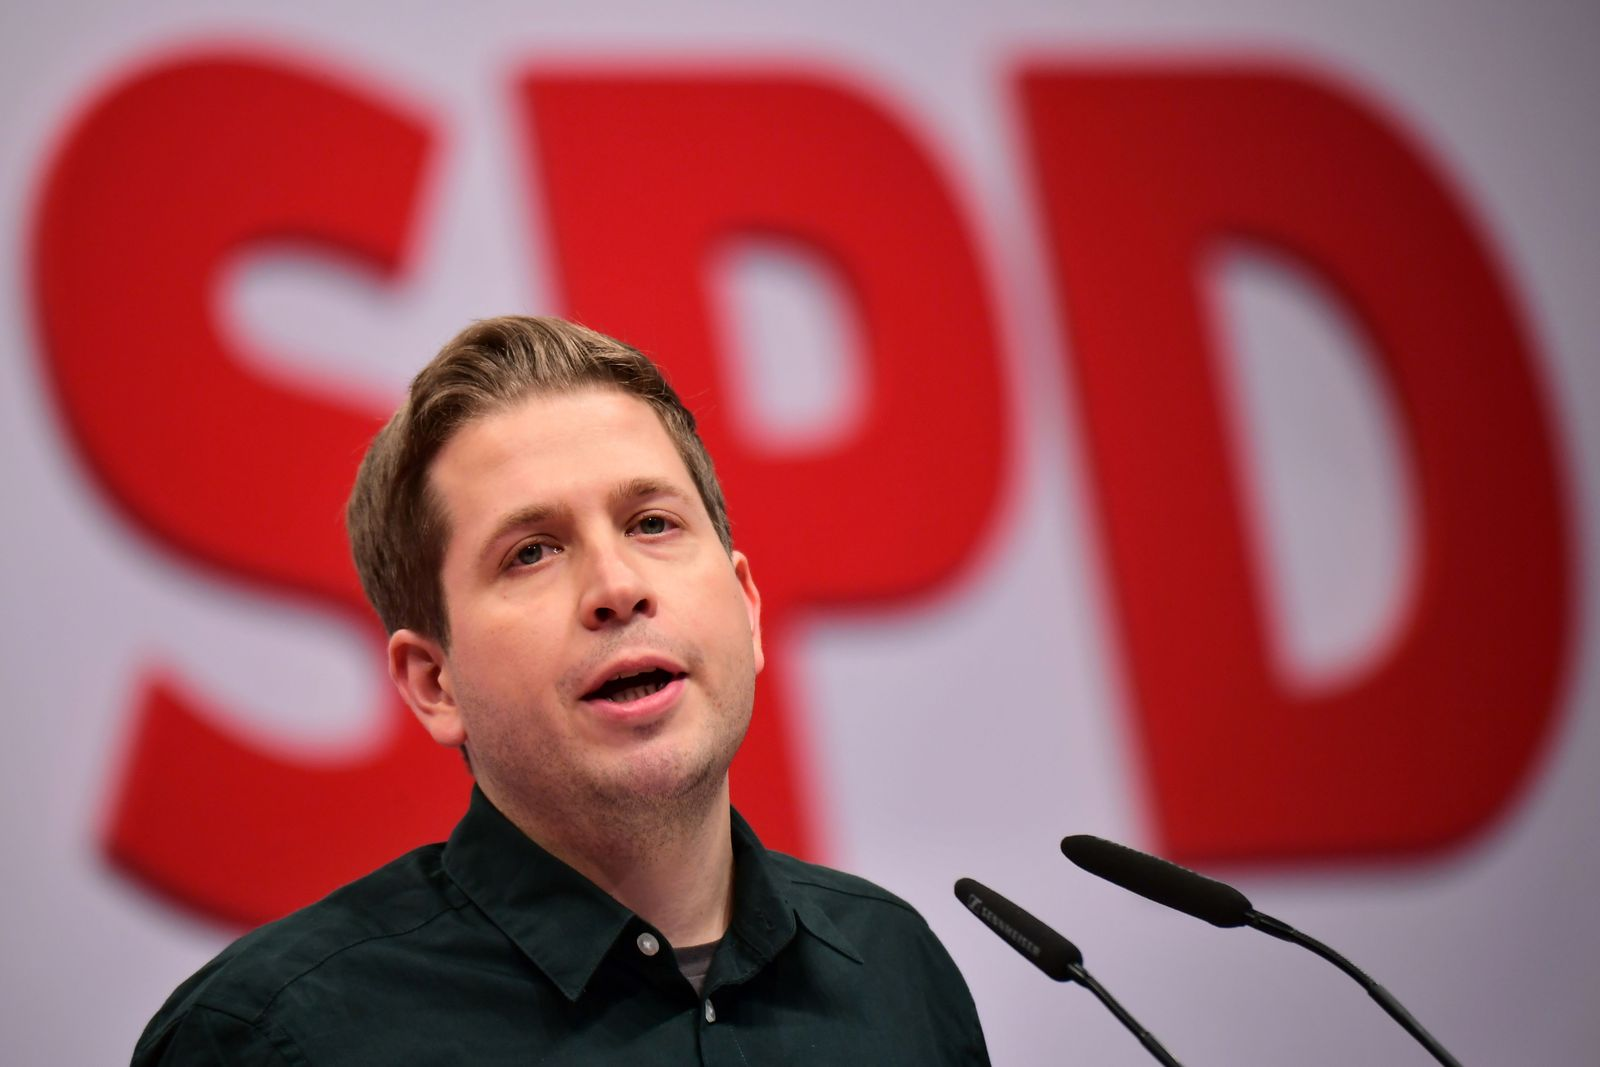 SPD party convention in Berlin, Germany - 06 Dec 2019